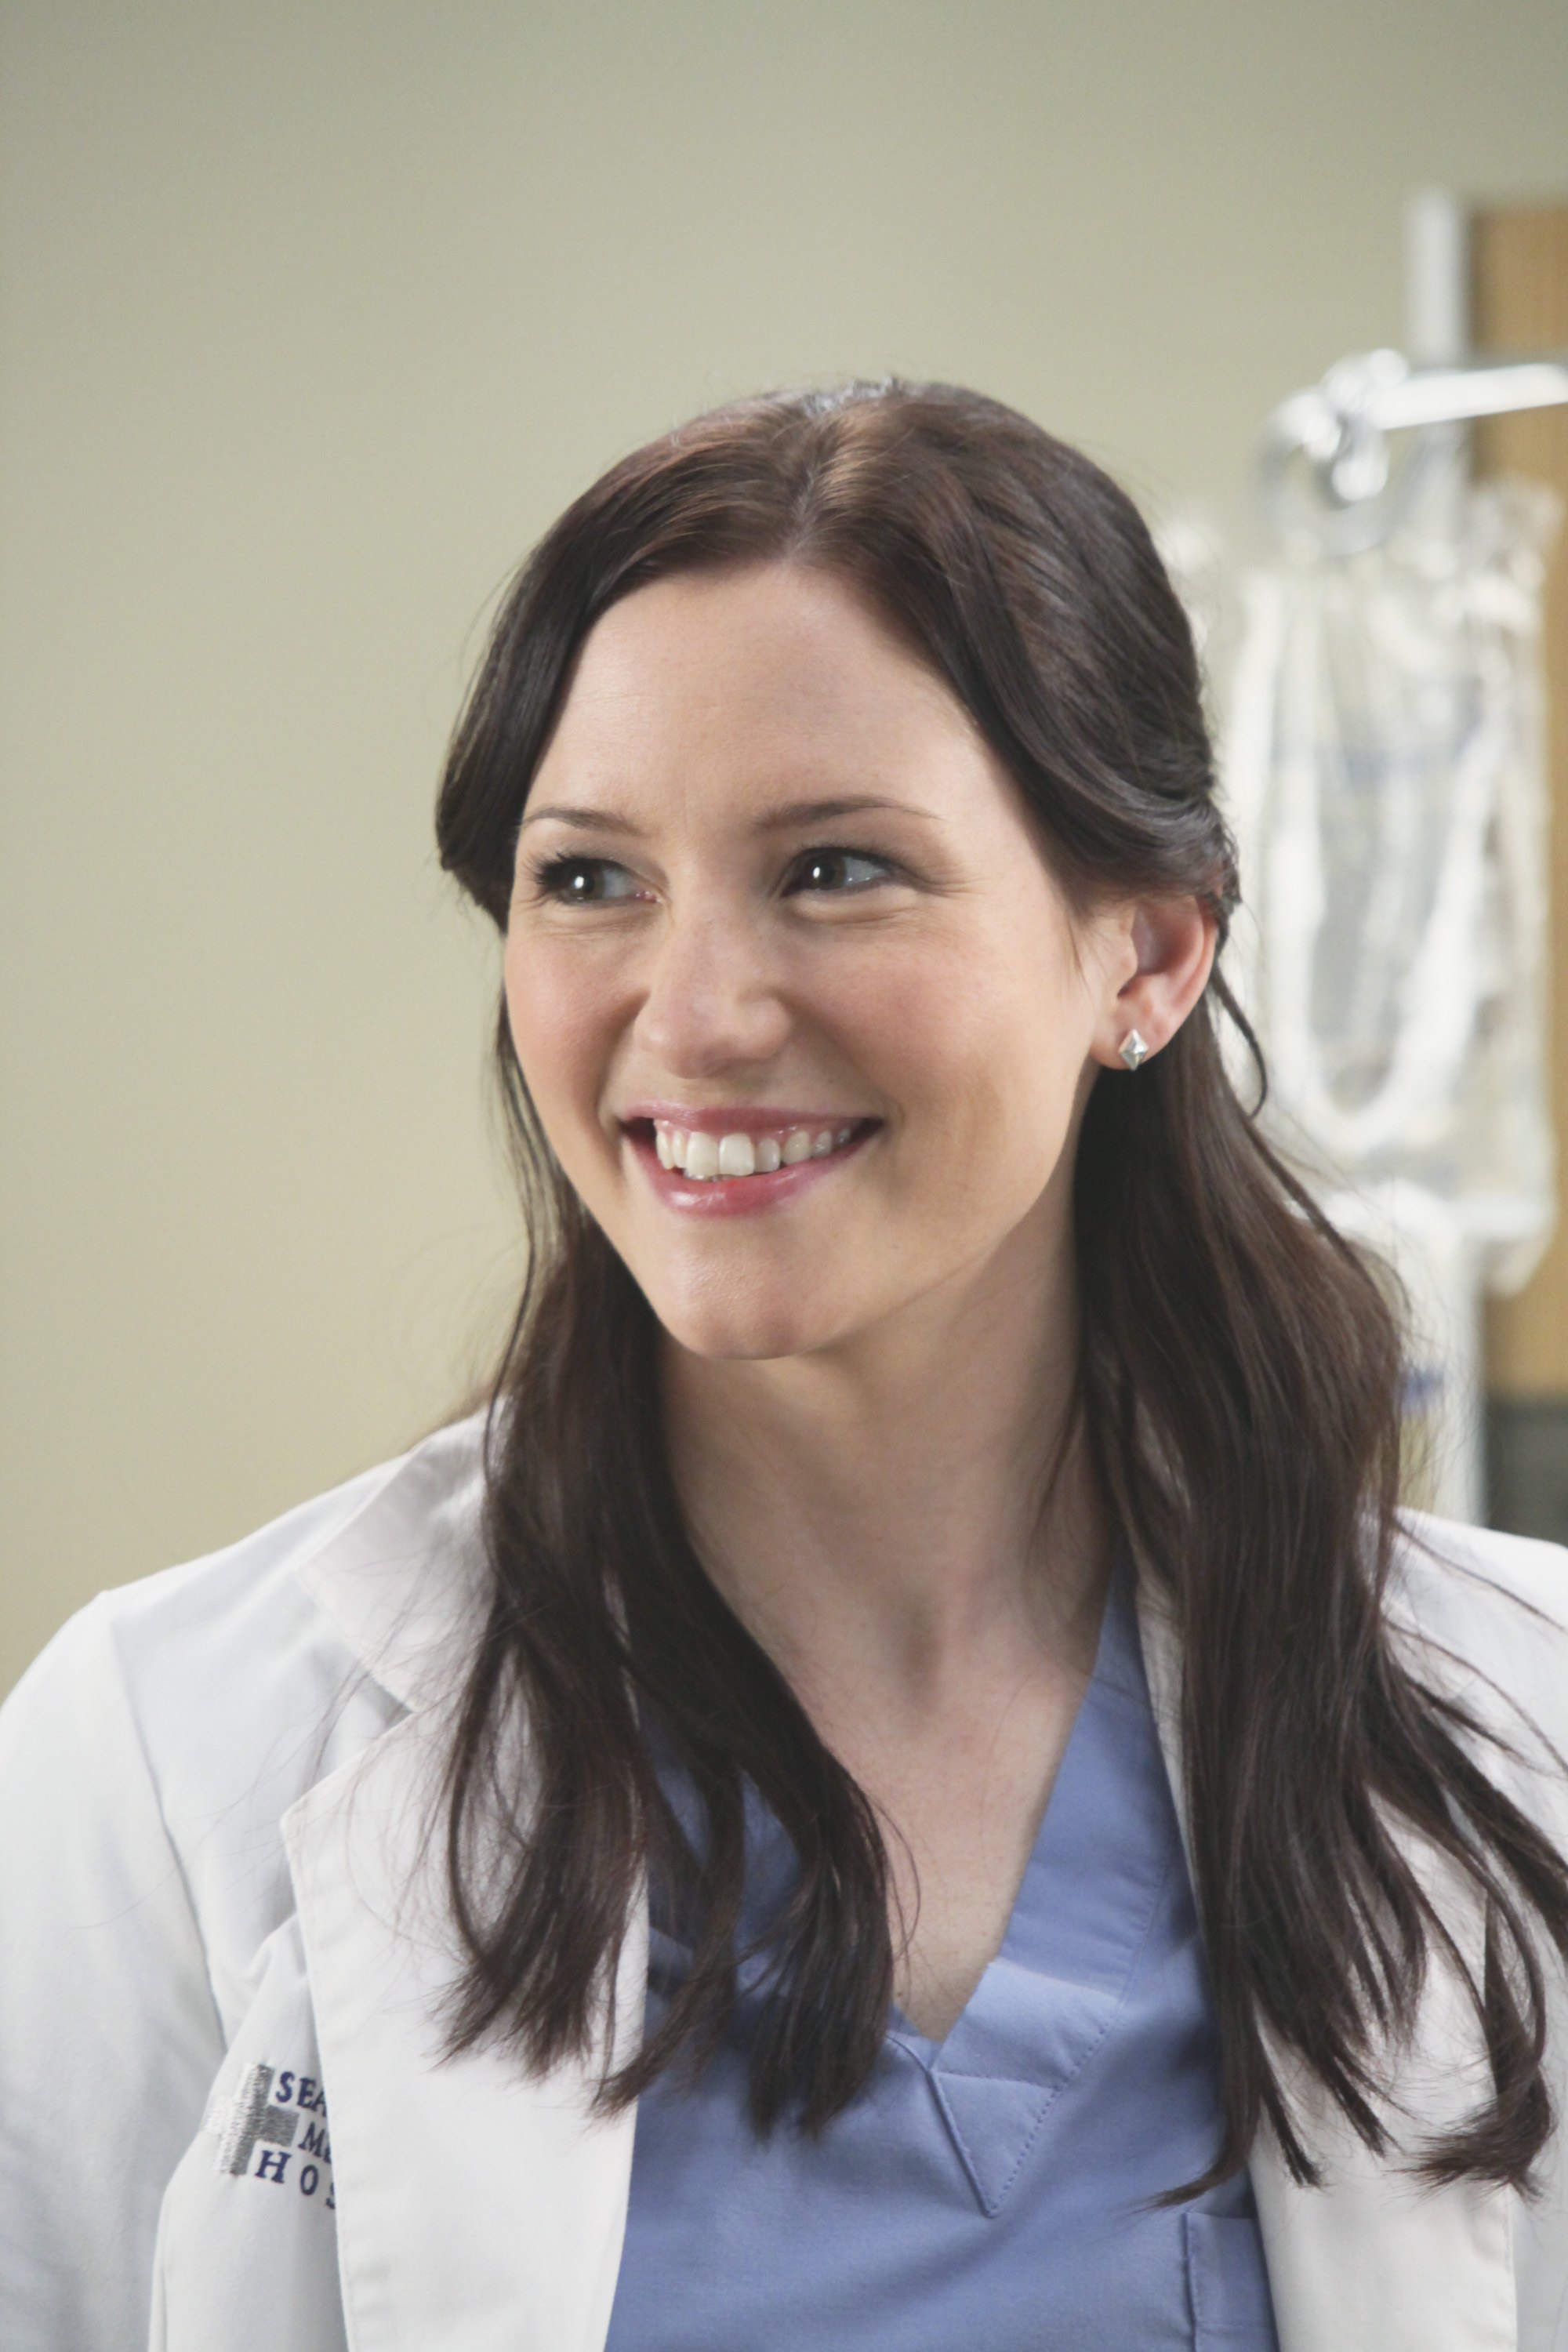 Lexie Grey Greys Anatomy Getty Images